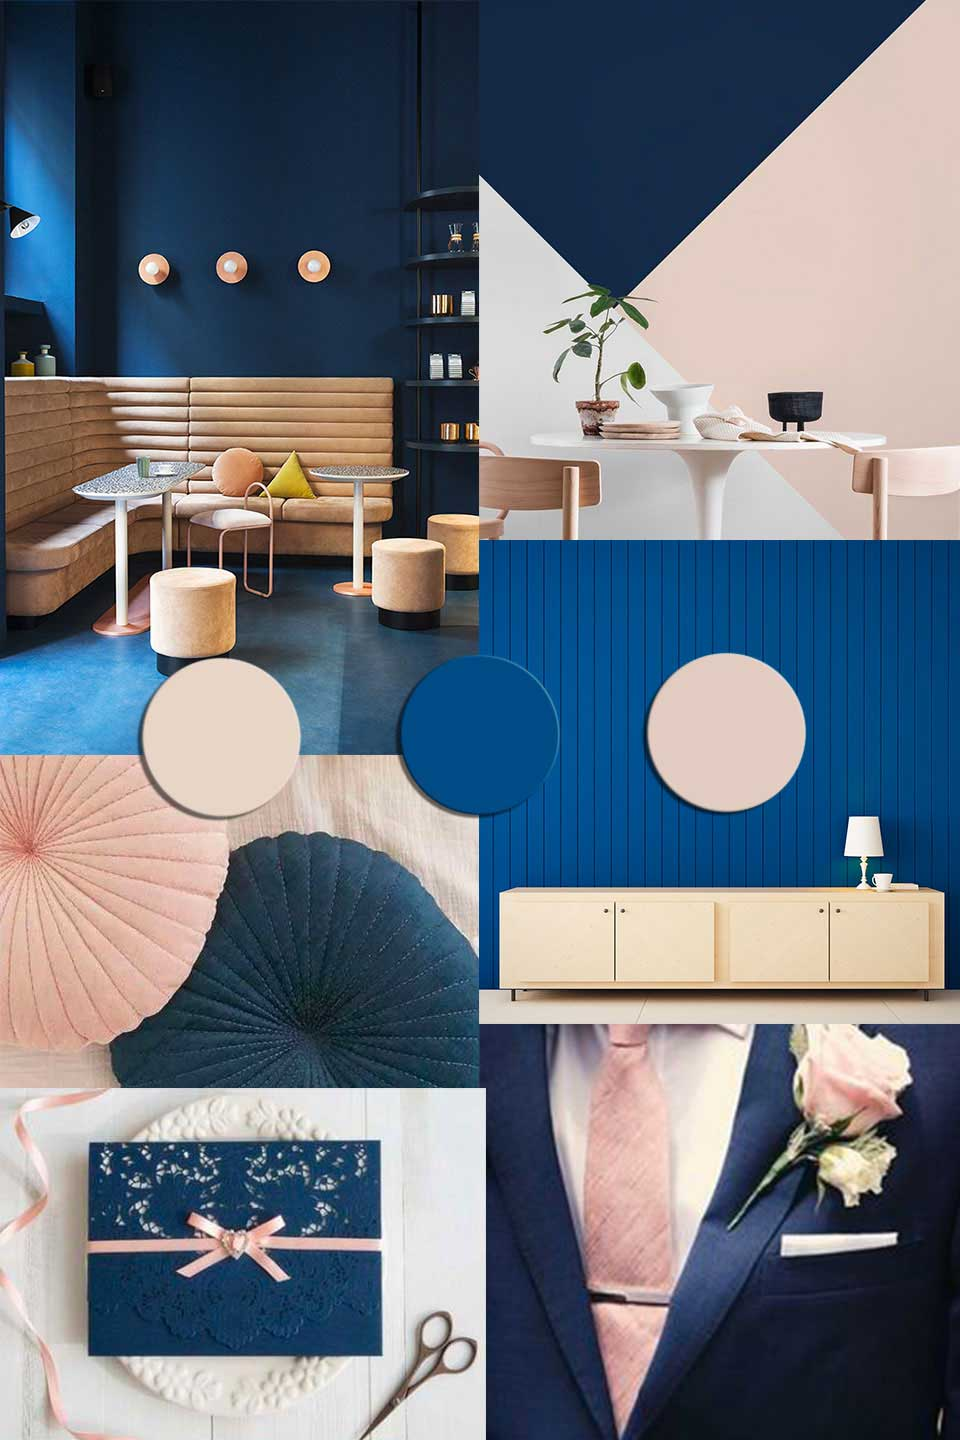 Color Trends 2021 Starting From Pantone 2020 Classic Blue La Mejor Imagen Sobre Decorating Ideas For The In 2020 Farbpalette Blau Innenraumfarben Farbe Des Jahres